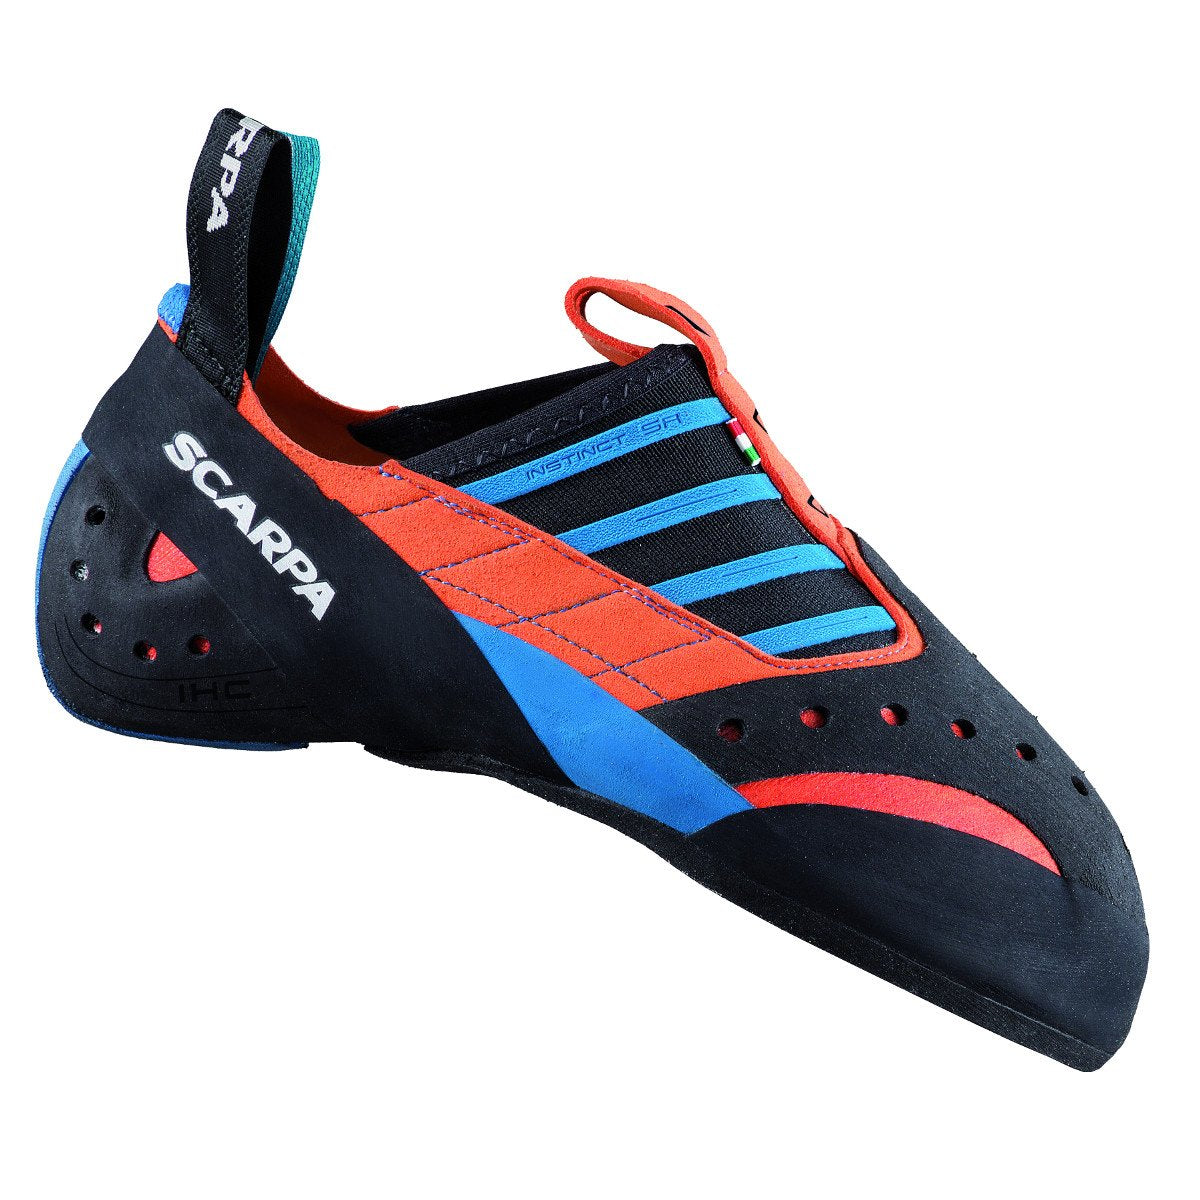 Scarpa Instinct SR climbing shoe, in black, red and blue colours